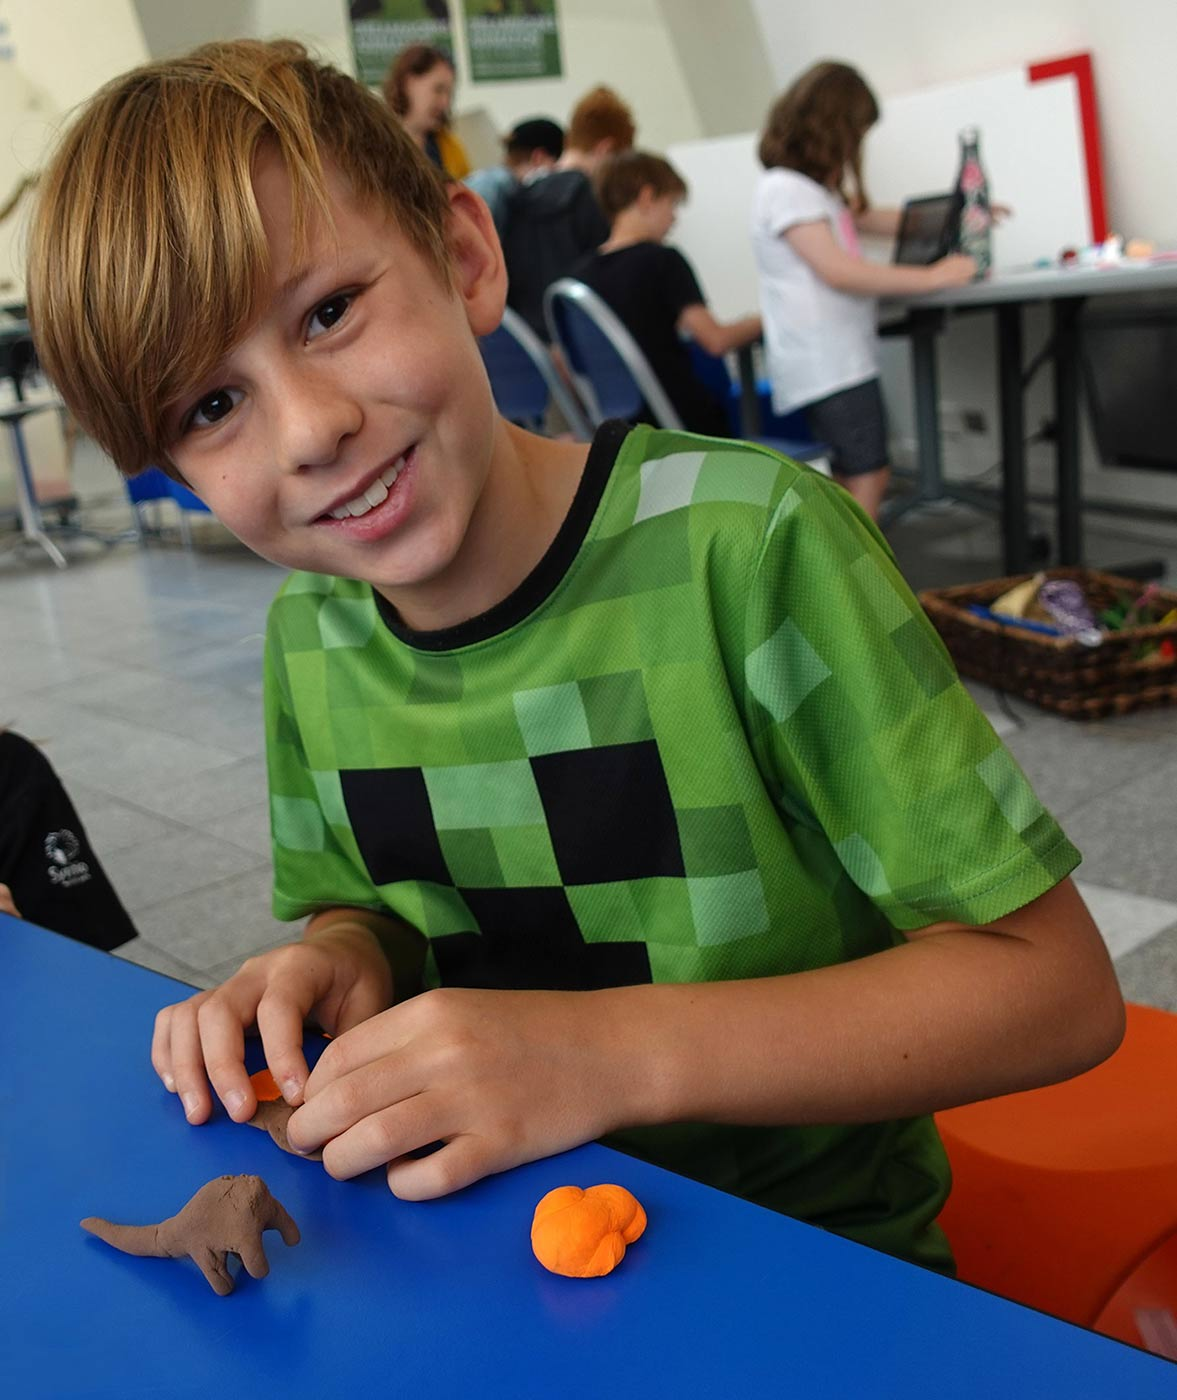 A young boy is smiling for the camera while participating in a craft activity at the National Museum of Australia.